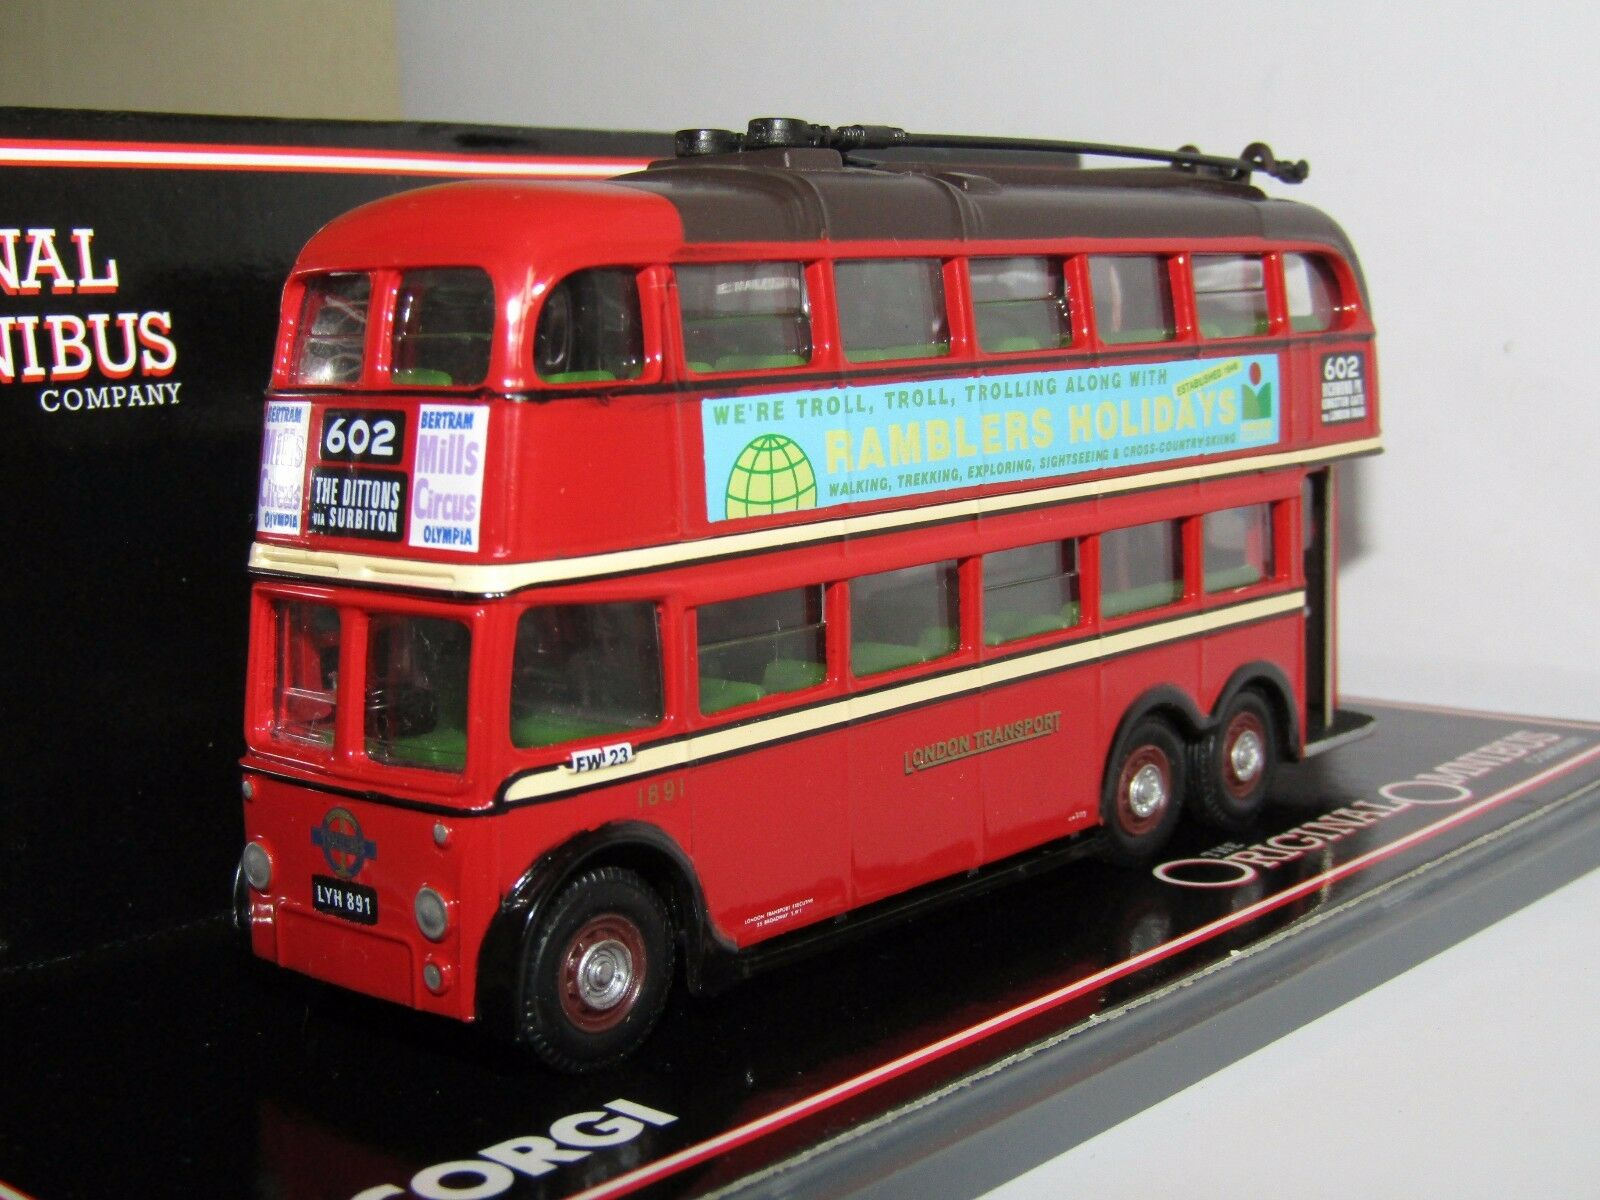 OOC Q1 TROLLEYBUS LONDON TRANSPORT ROUTE 602 THE DITTONS 1 76 43708 2 RAMBLERS